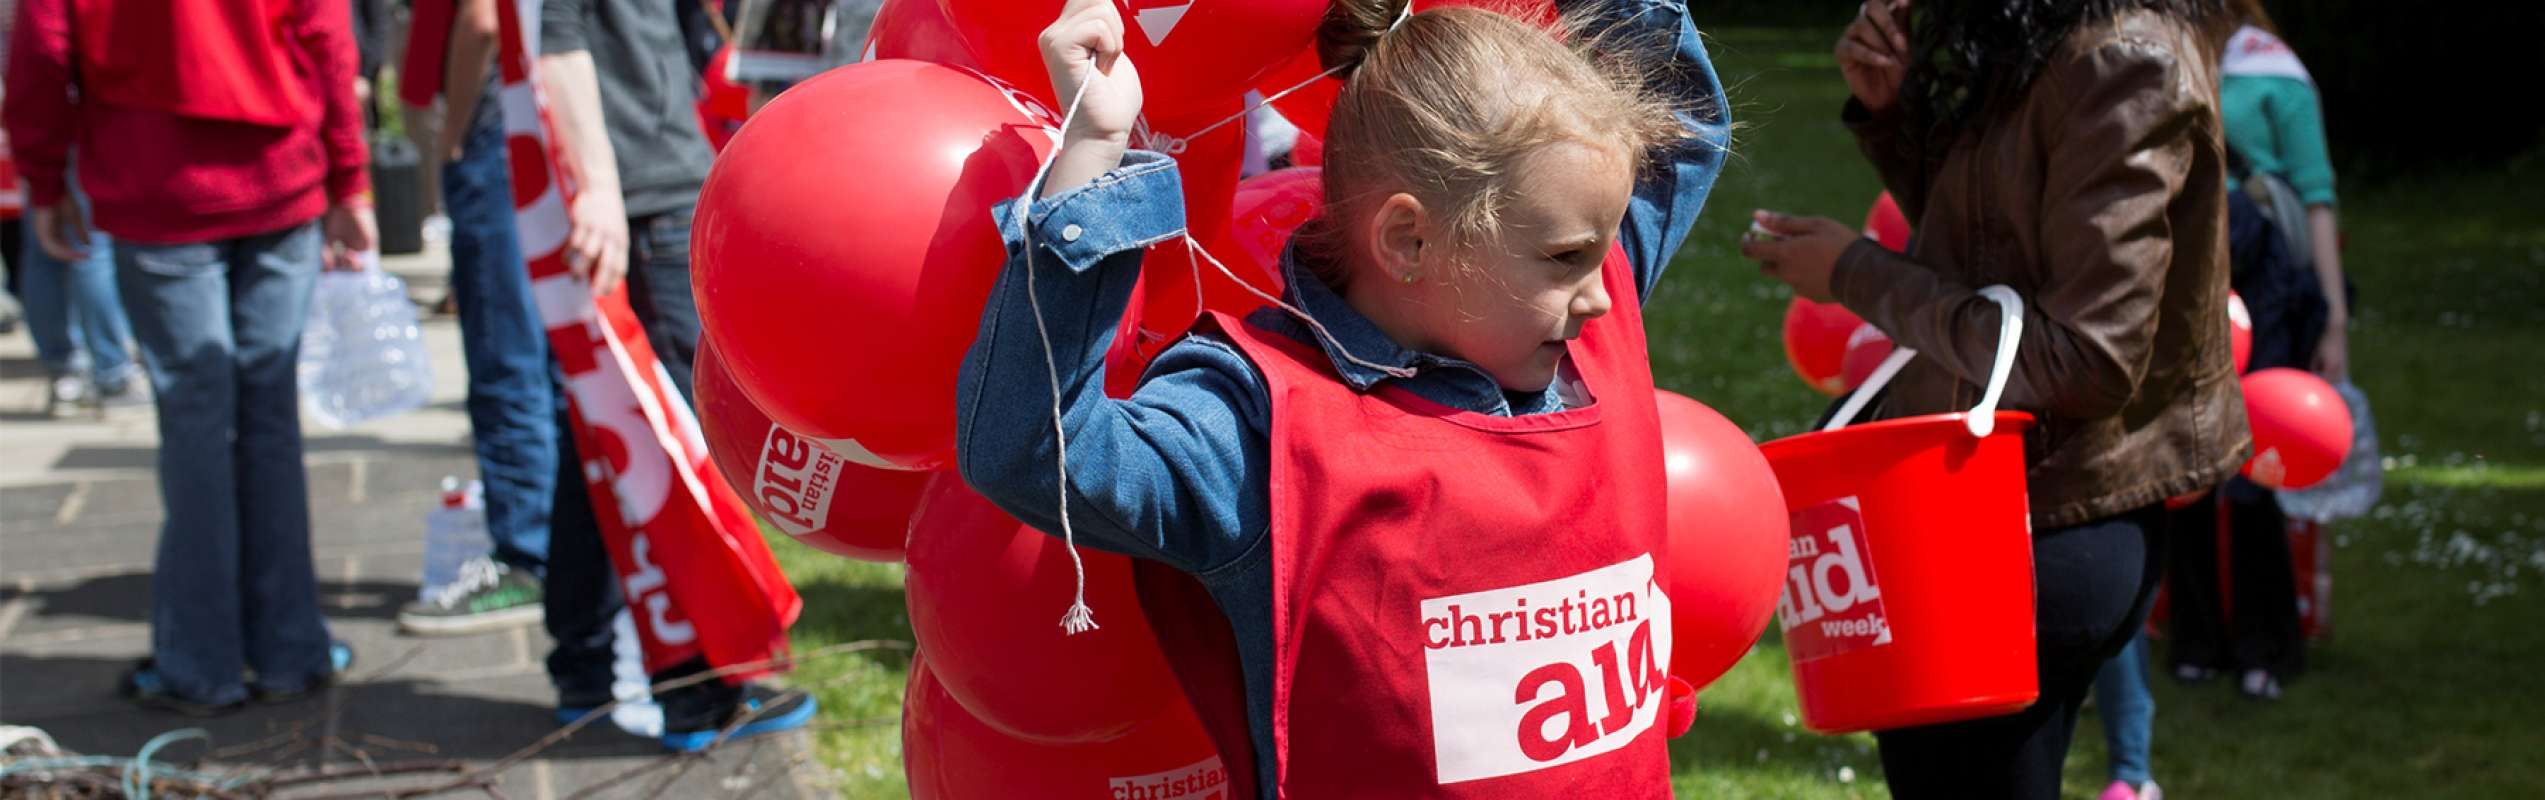 Child in Christian Aid tabard